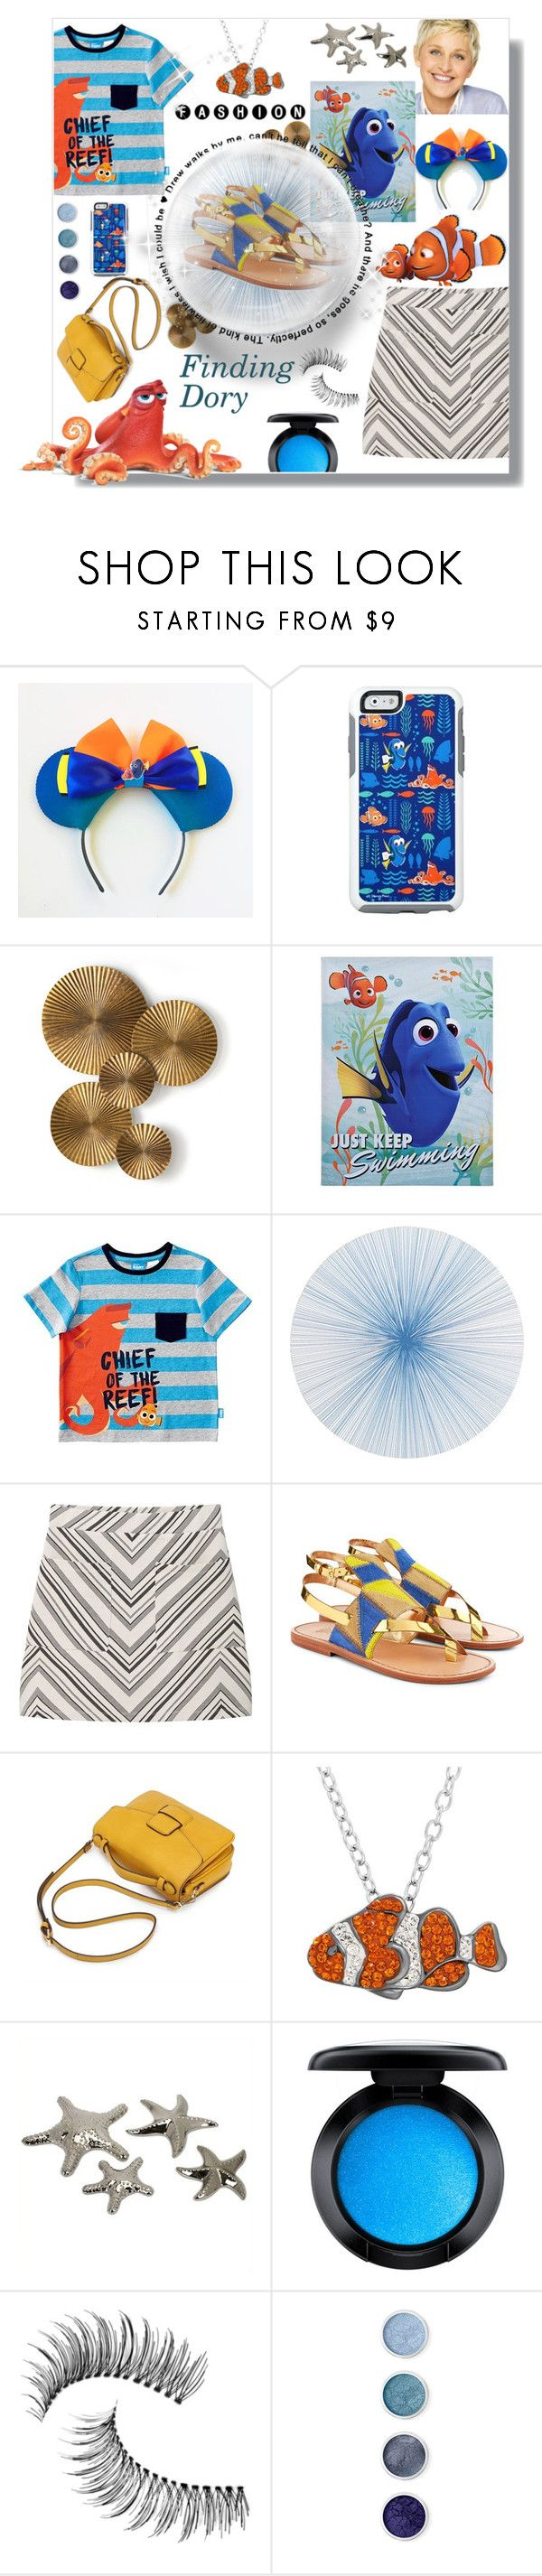 """""""Finding Dory 😍😍😍"""" by madhu-147 ❤ liked on Polyvore featuring OtterBox, Arteriors, Tisch New York, MANGO, Sanchita, Animal Planet, IMAX Corporation, MAC Cosmetics, Trish McEvoy and Terre Mère"""